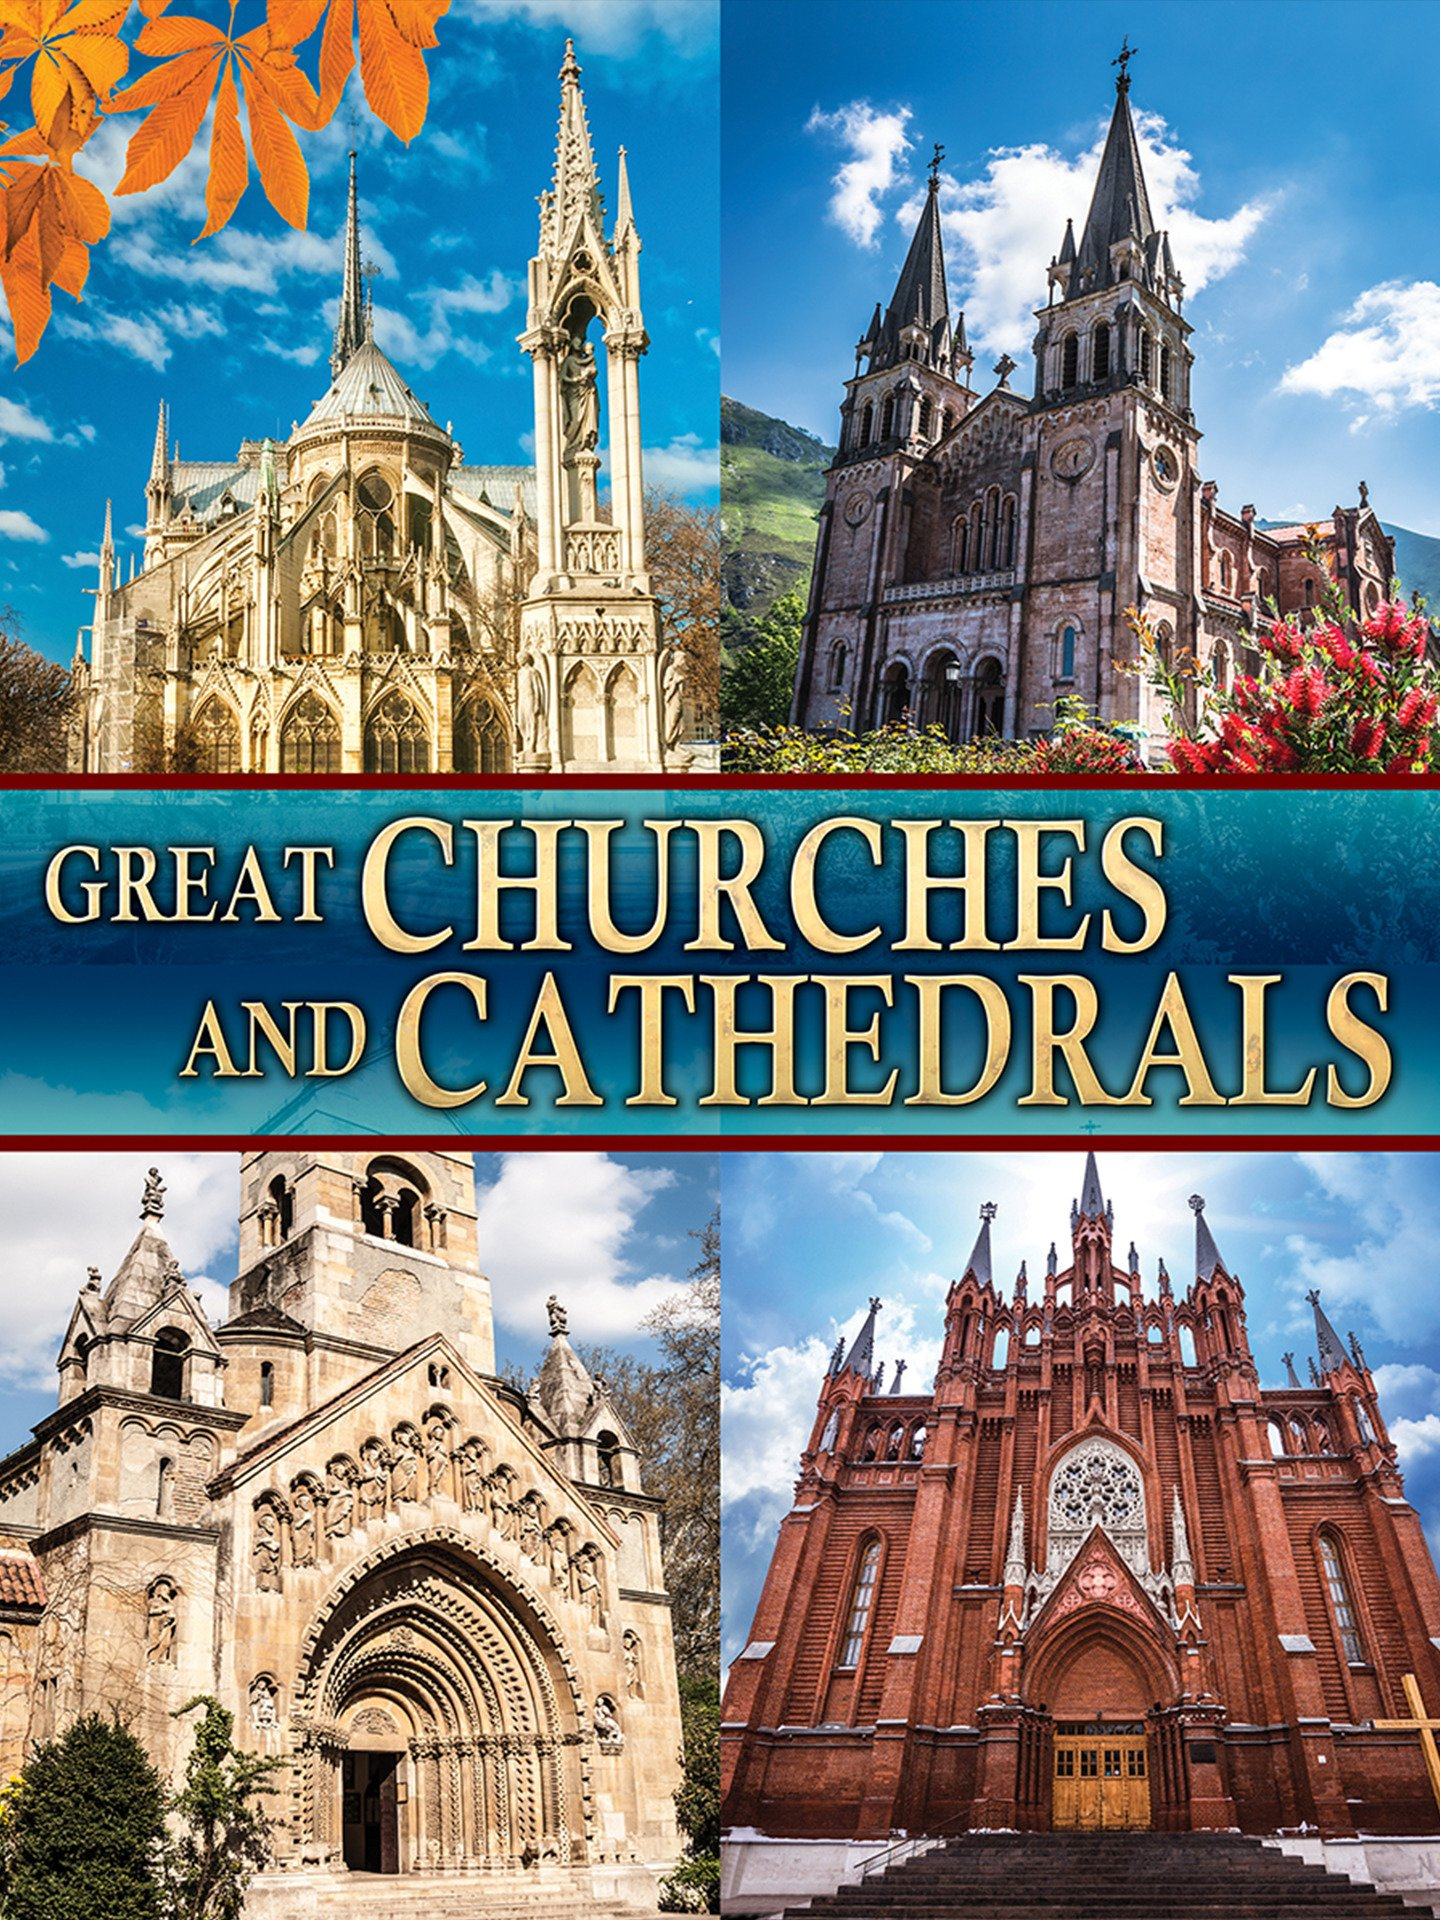 Great Churches and Cathedrals on Amazon Prime Video UK